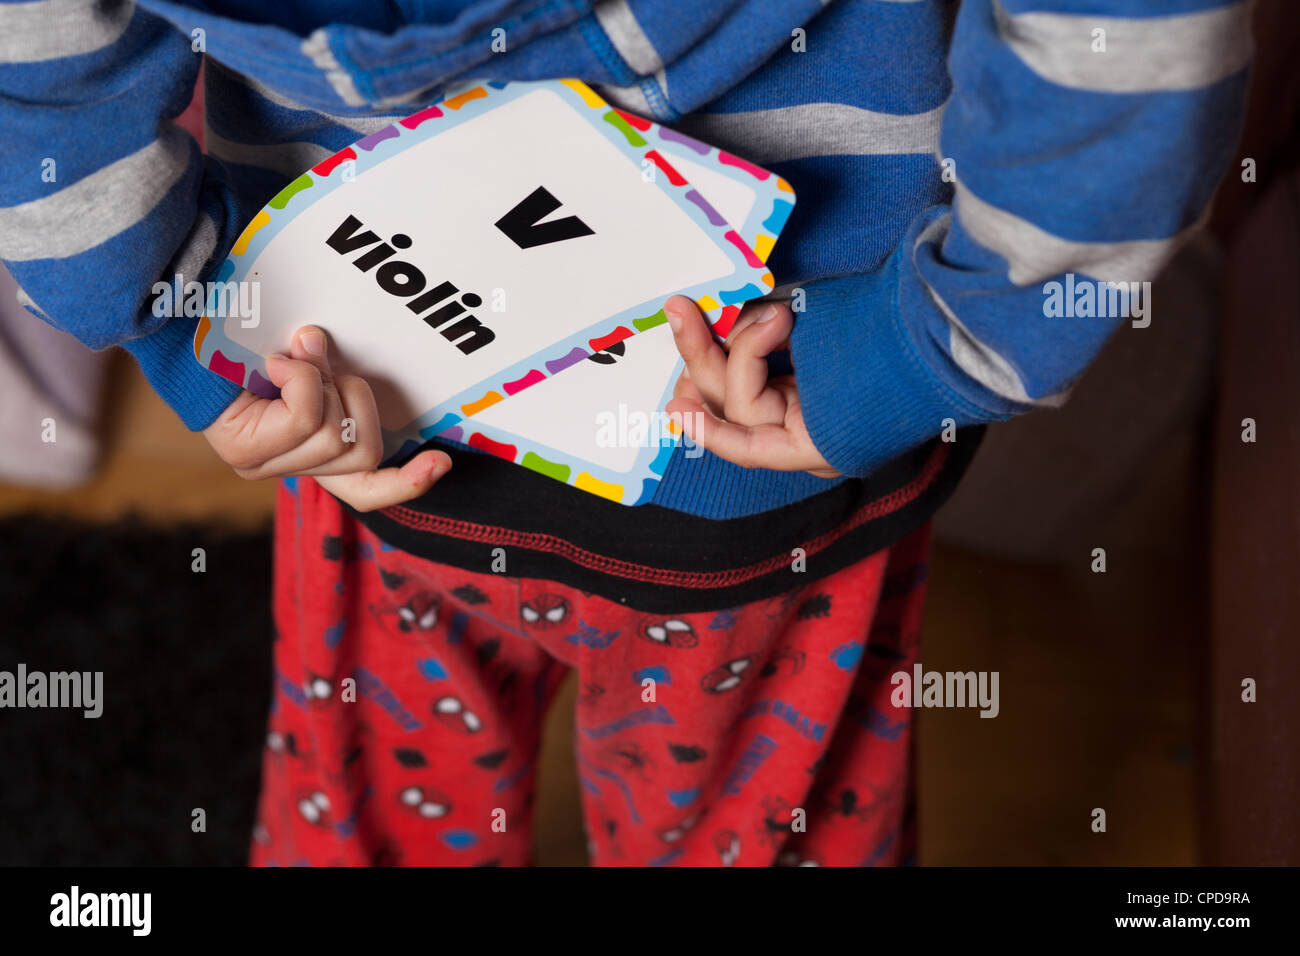 Child hides alphabet card behind his back - Stock Image